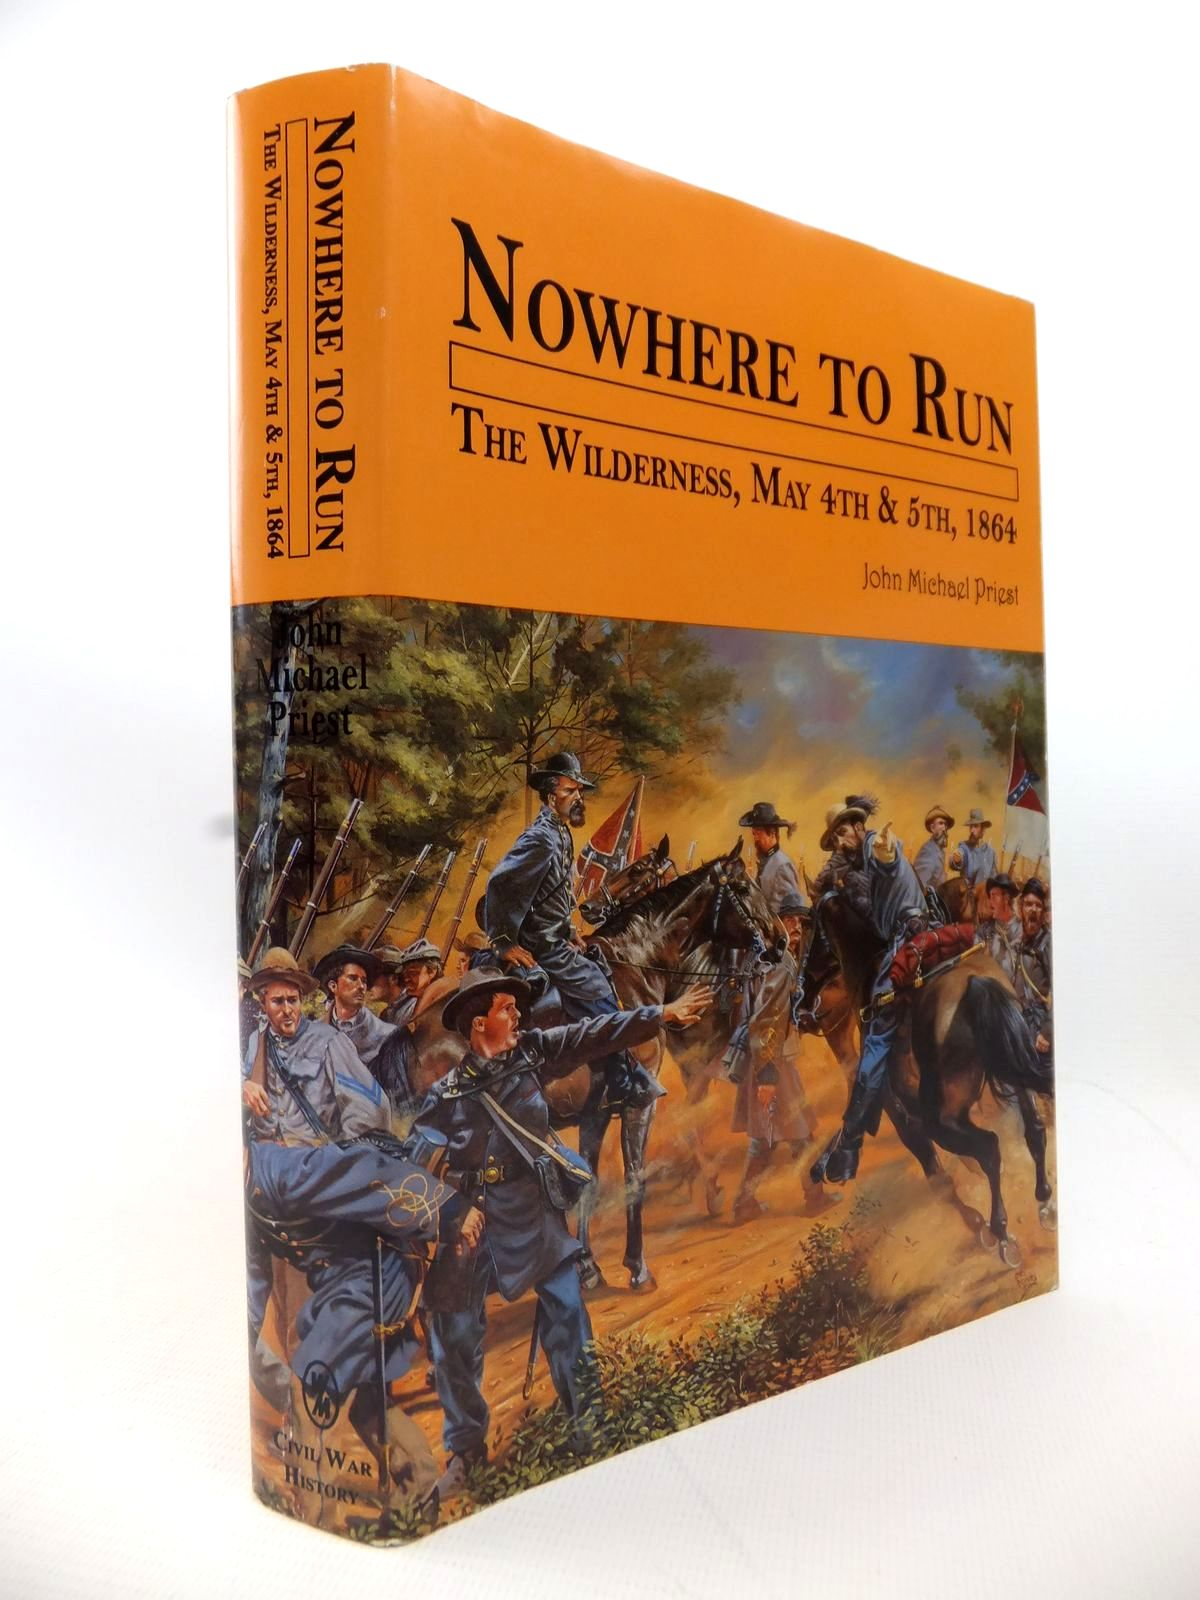 Photo of NOWHERE TO RUN: THE WILDERNESS MAY 4TH & 5TH 1864 written by Priest, John Michael published by White Mane Publishing Company Inc. (STOCK CODE: 1813997)  for sale by Stella & Rose's Books